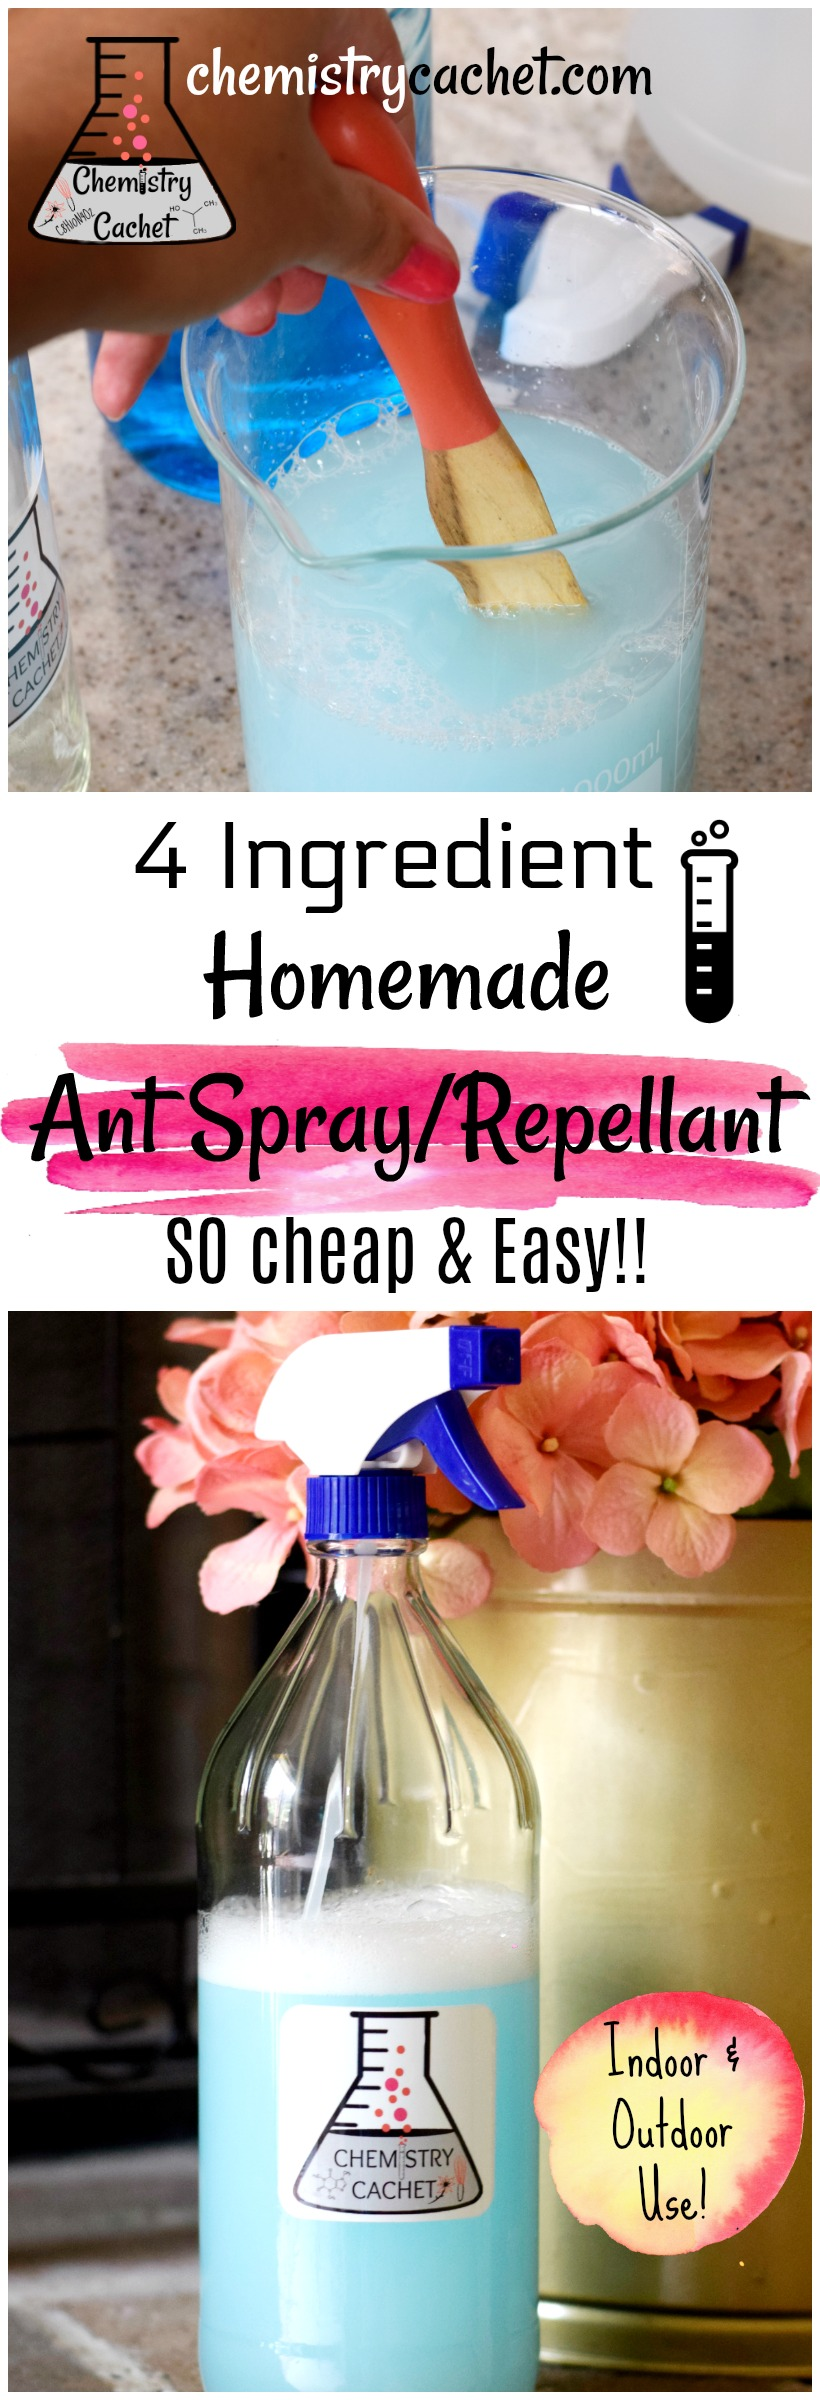 4 Ingredient homemade ant spray DIY ant repellant so cheap and easy to make! Good for indooroutdoor use on chemistrycachet.com